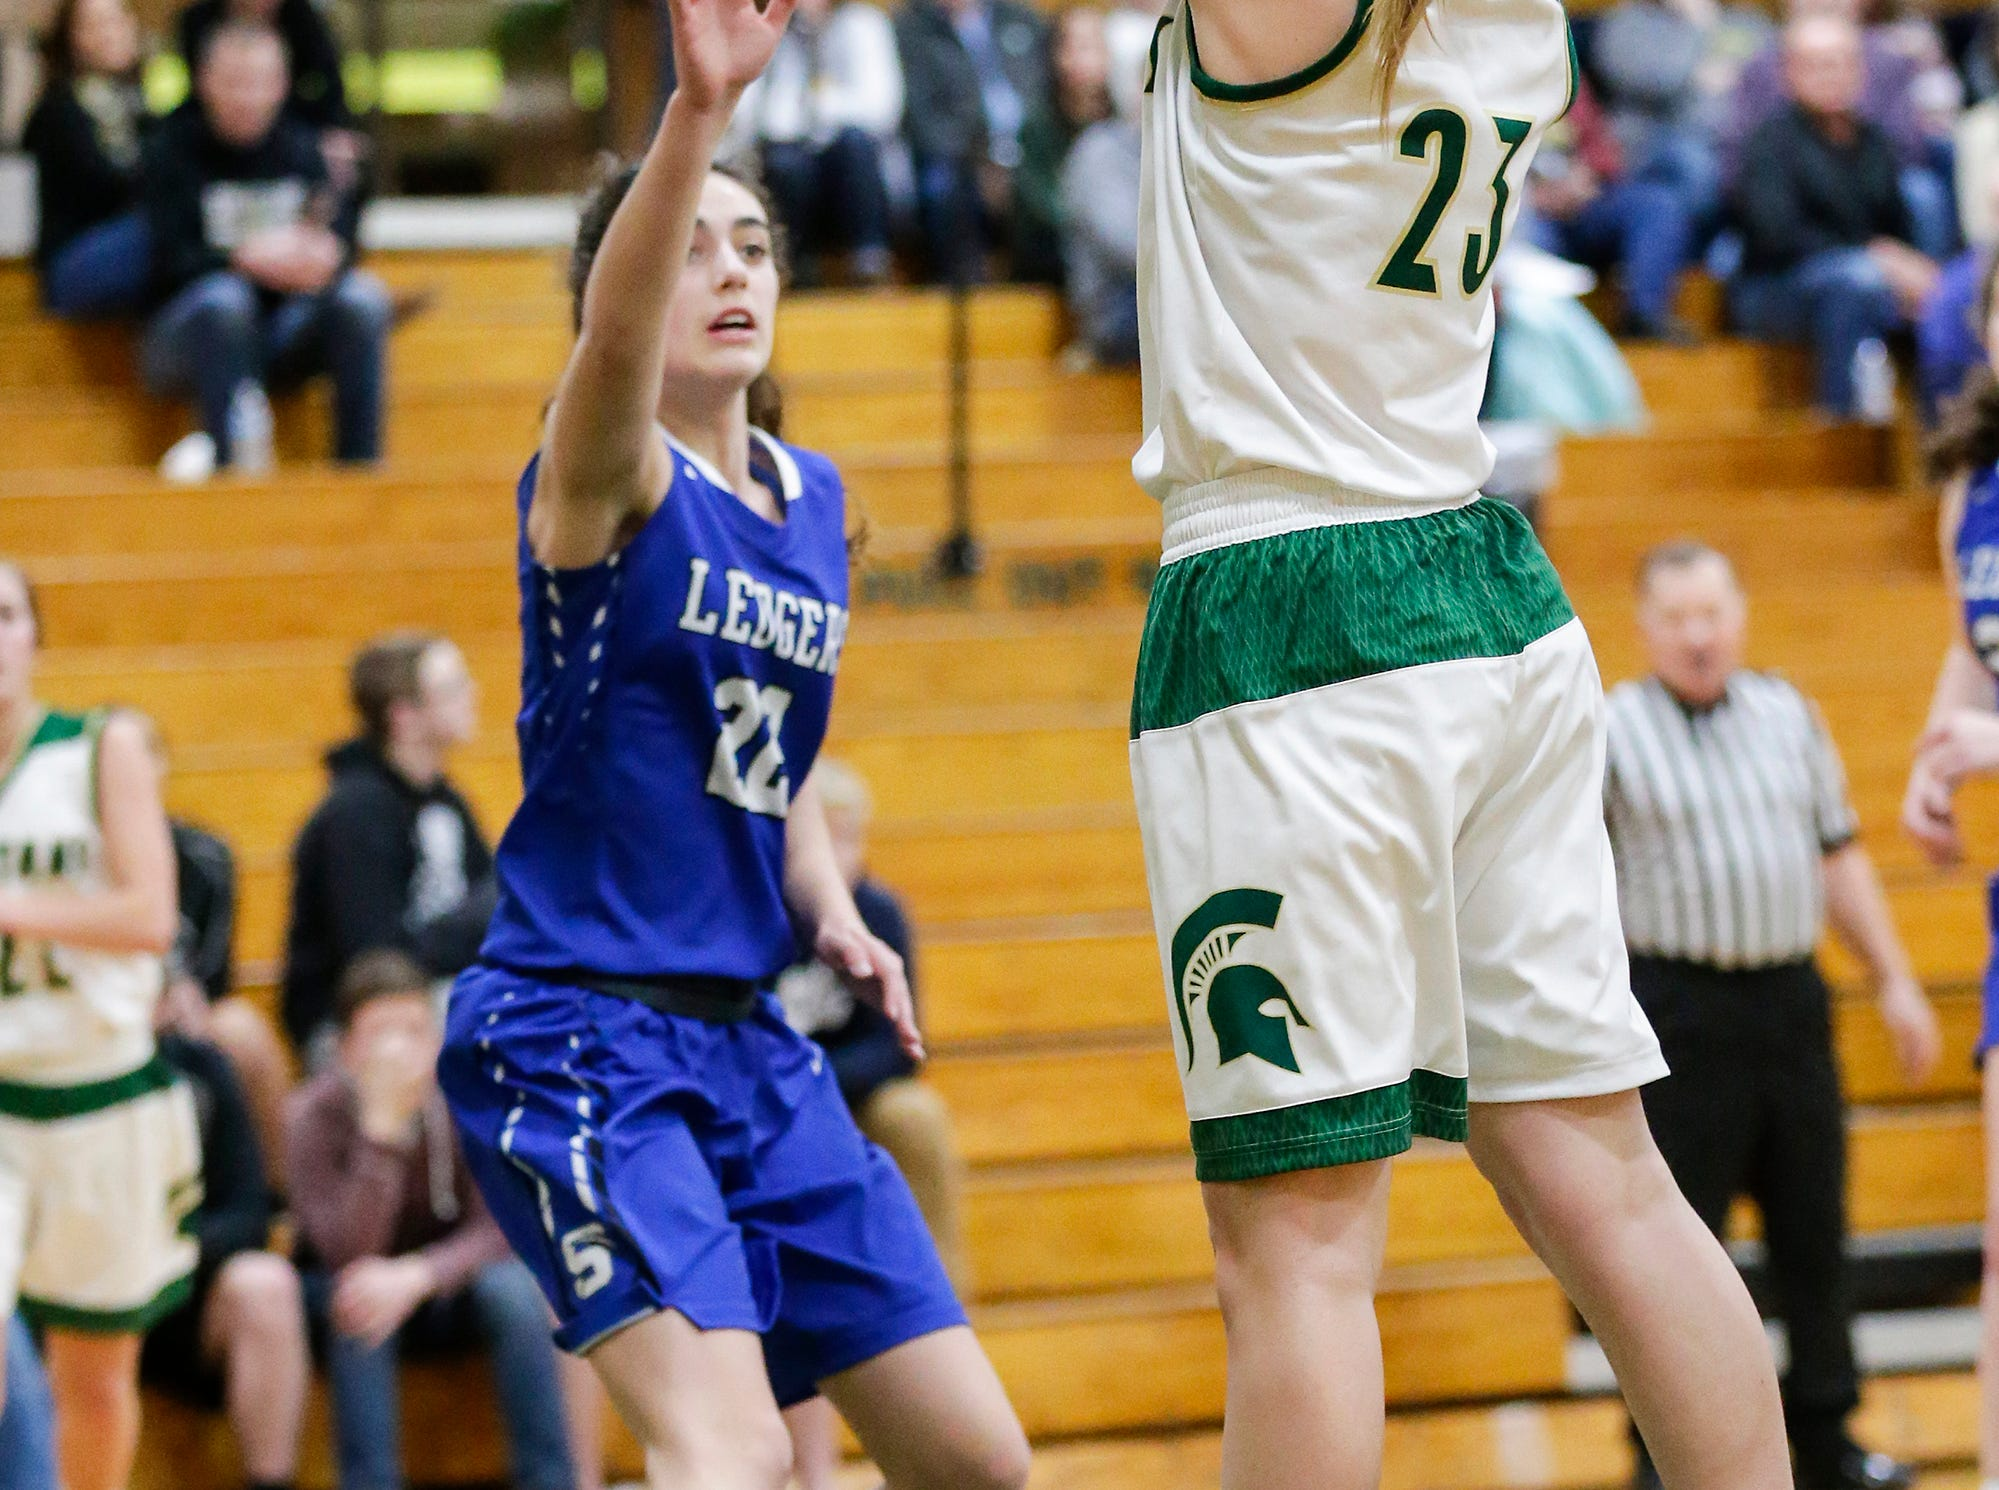 Laconia High School girls basketball's Harper Wurtz takes a shot against St. Mary's Springs Academy Tuesday, January 15, 2019 during their game in Rosendale. Laconia won the game 57-45. Doug Raflik/USA TODAY NETWORK-Wisconsin